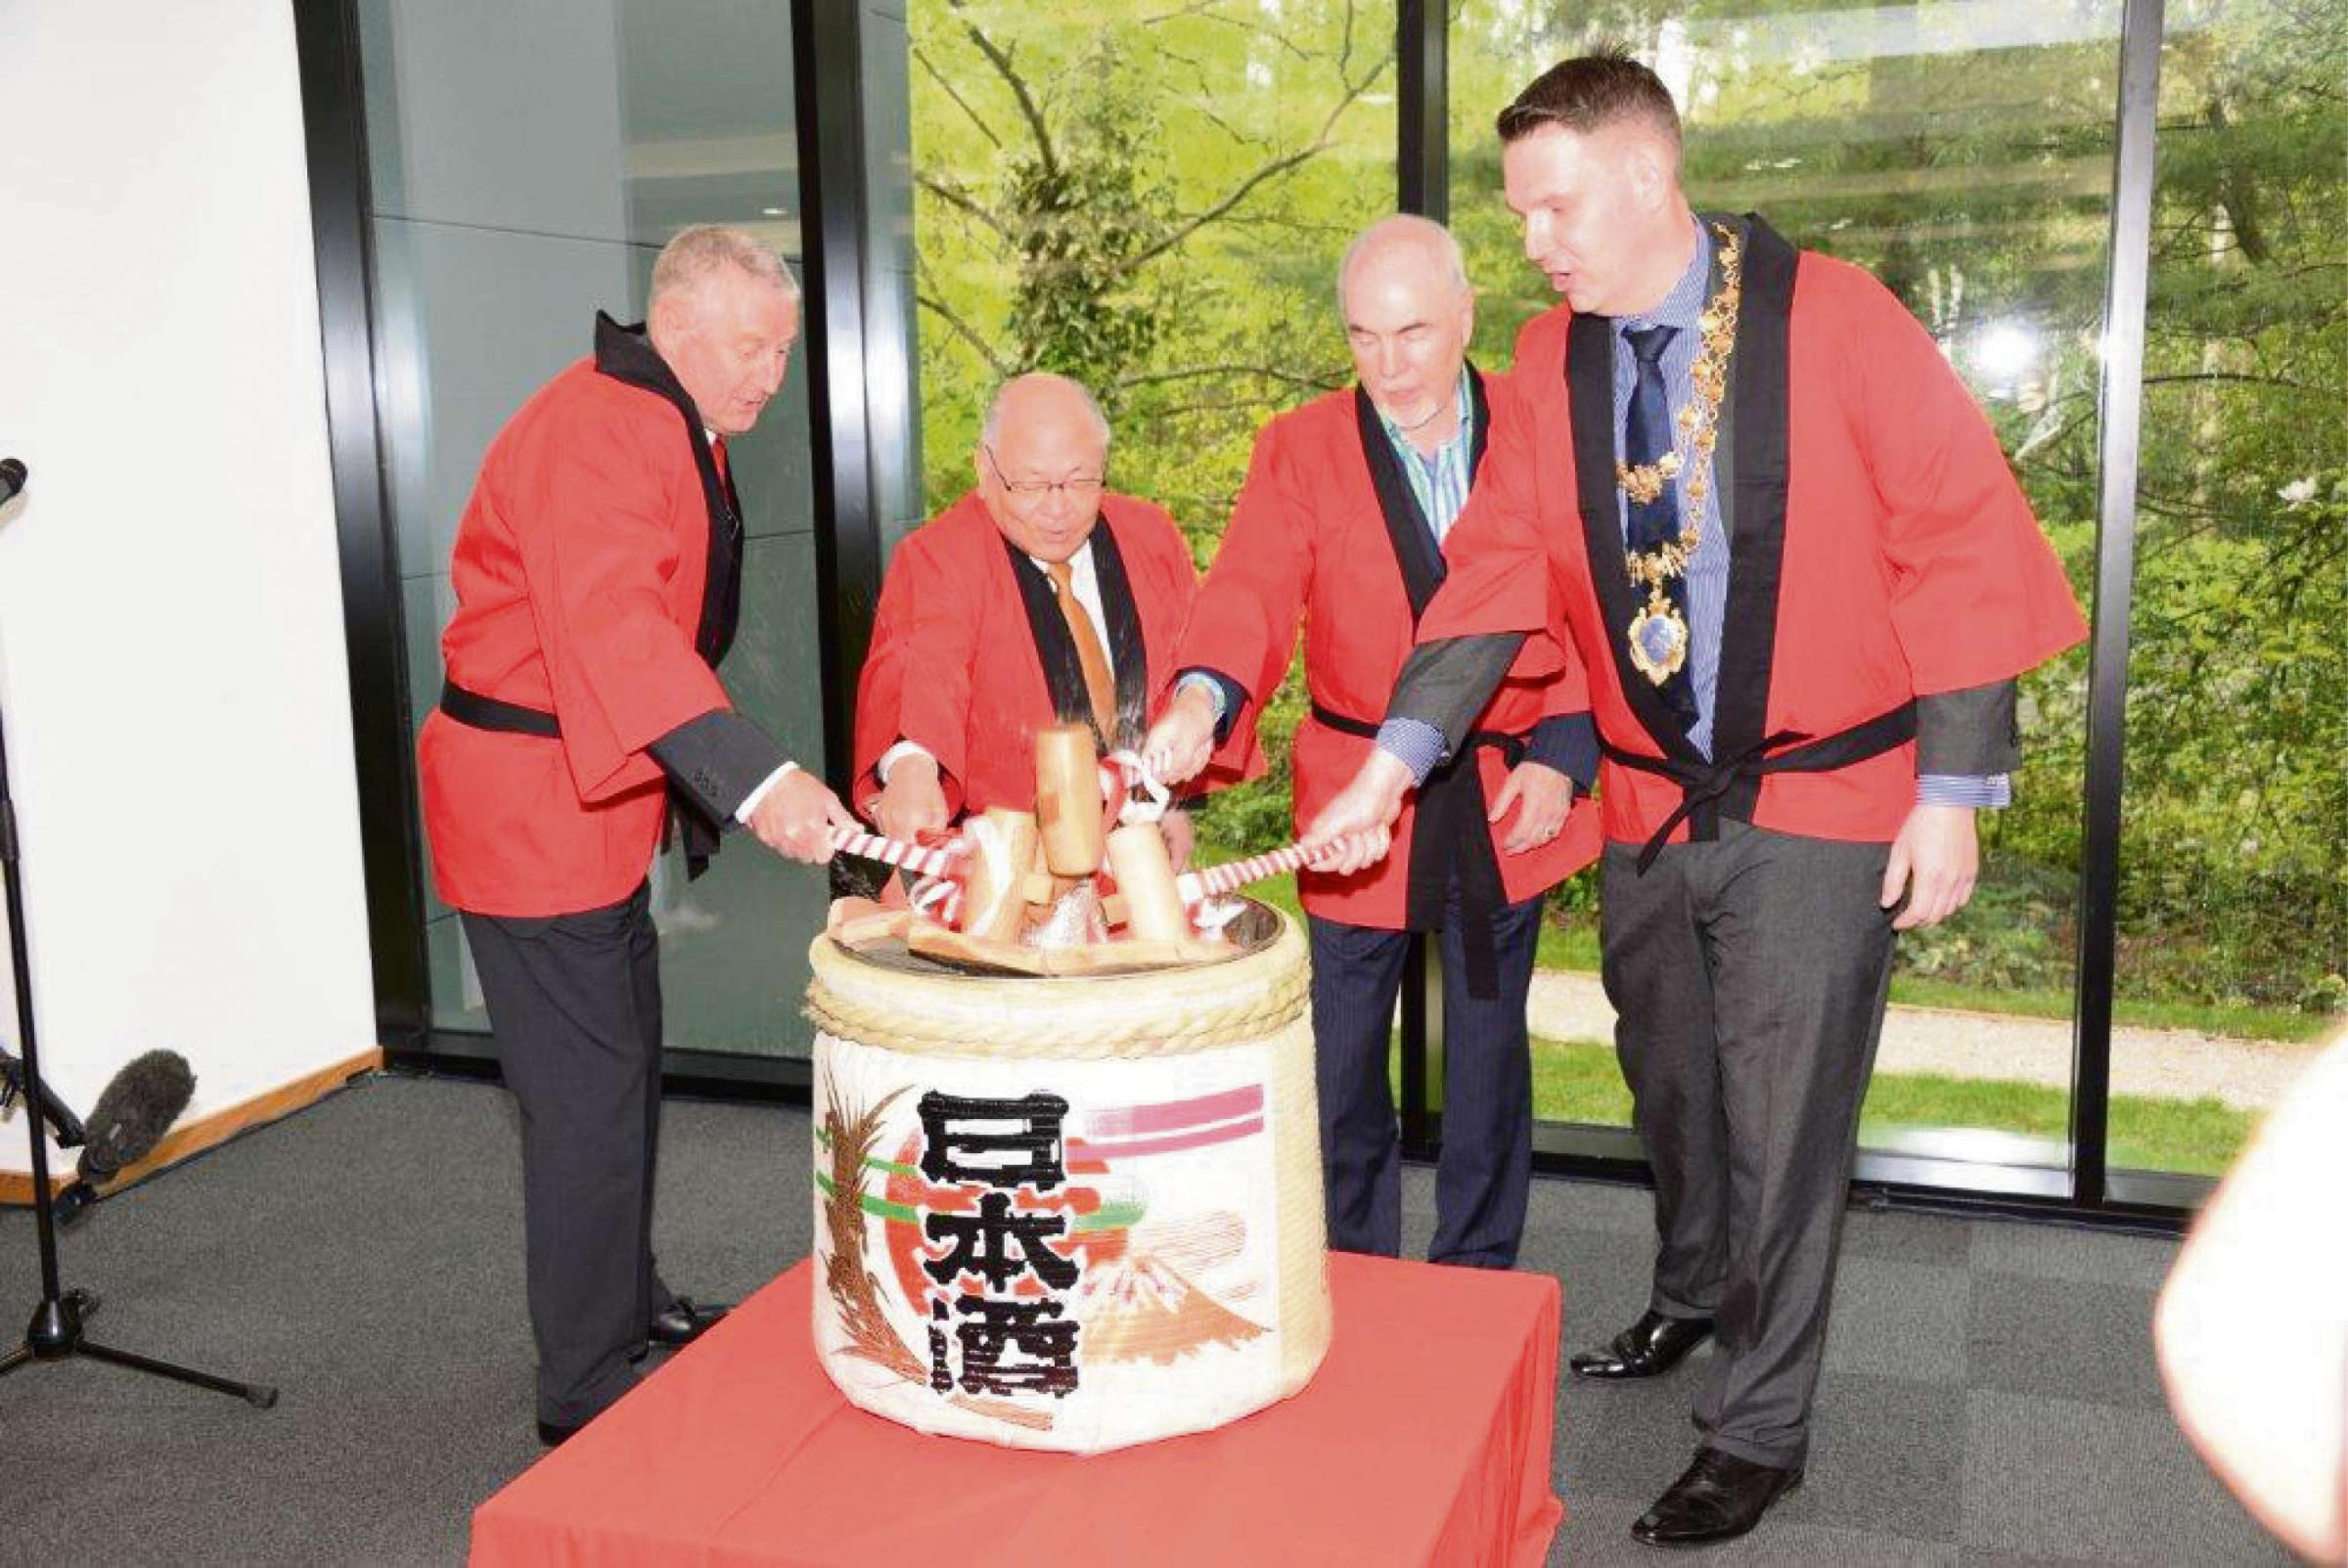 GRAND OPENING: From left, Amada general manager Steve Basford, Mitsuo Okamoto, managing director of partner Hallmark Sheetmetal Paul Martin, and John Campion in a display of Taiko drumming.